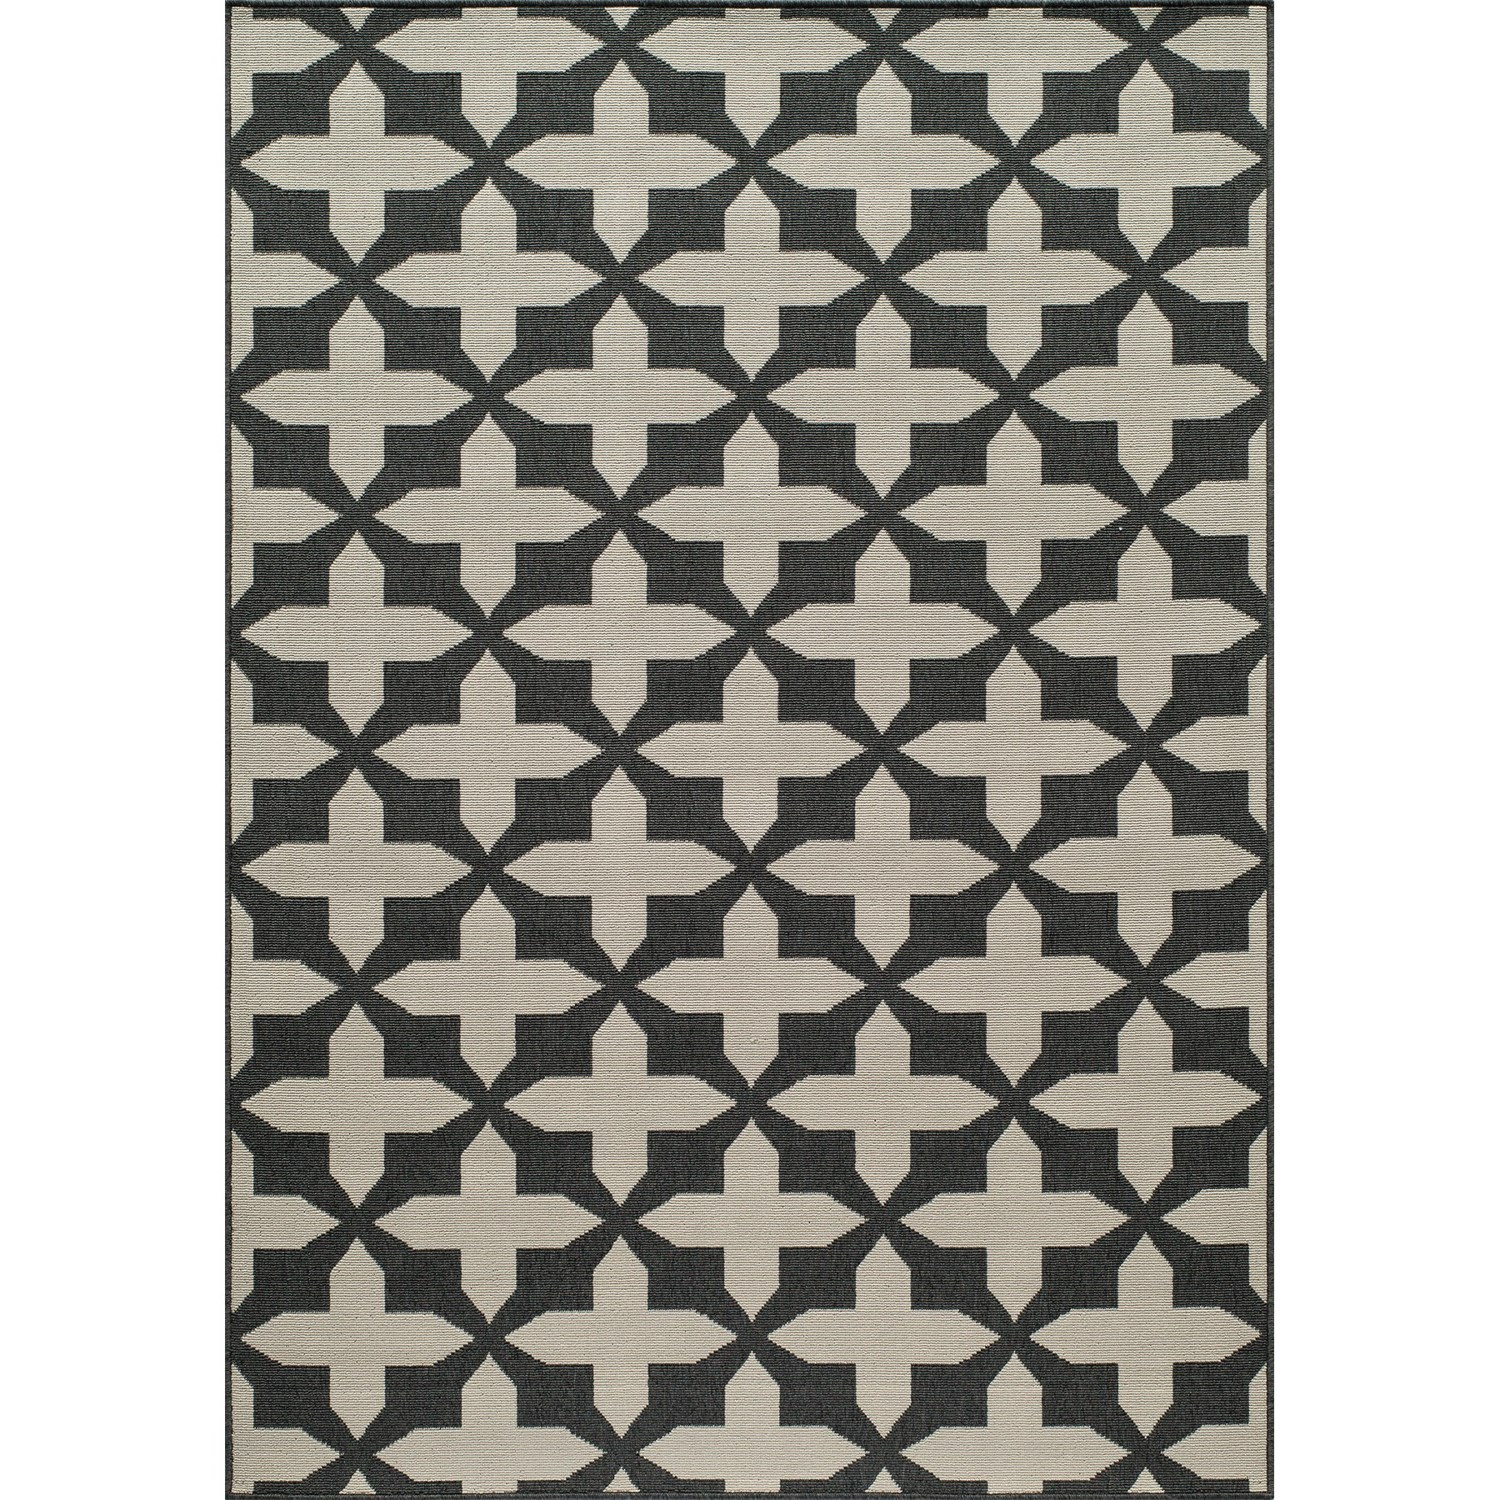 "Momeni Moroccan Lattice Indoor Outdoor Area Rug 5'3""x7'6"